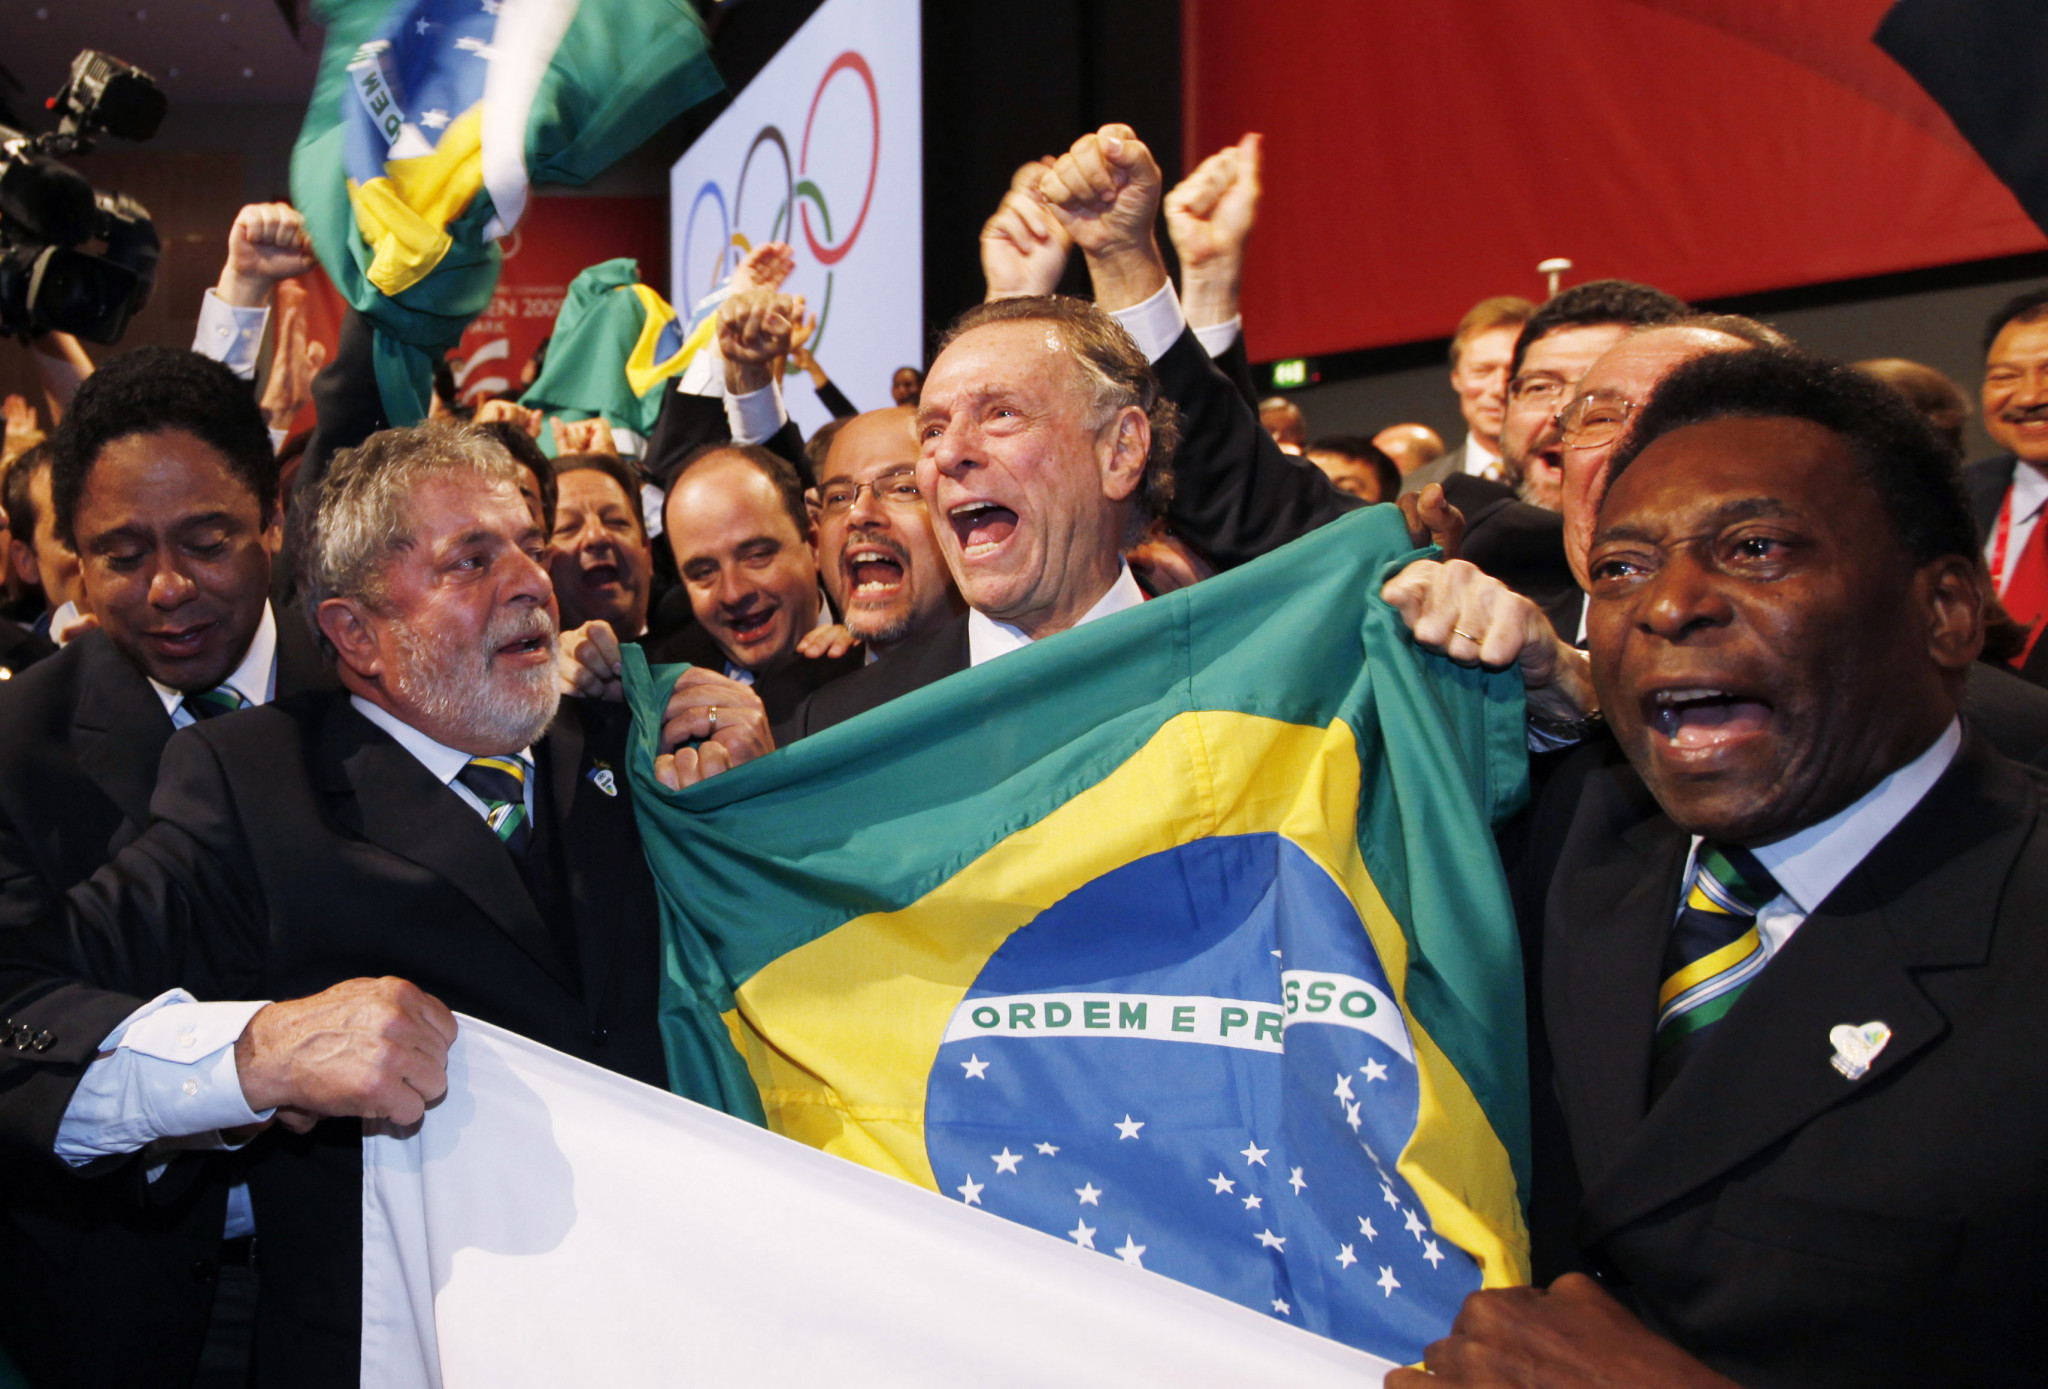 Pelé, right, pictured celebrating with figures including Carlos Nuzman and then-Brazilian President Luiz Inacio Lula da Silva when Rio was awarded the Olympics in Copenhagen in 2009 ©Getty Images